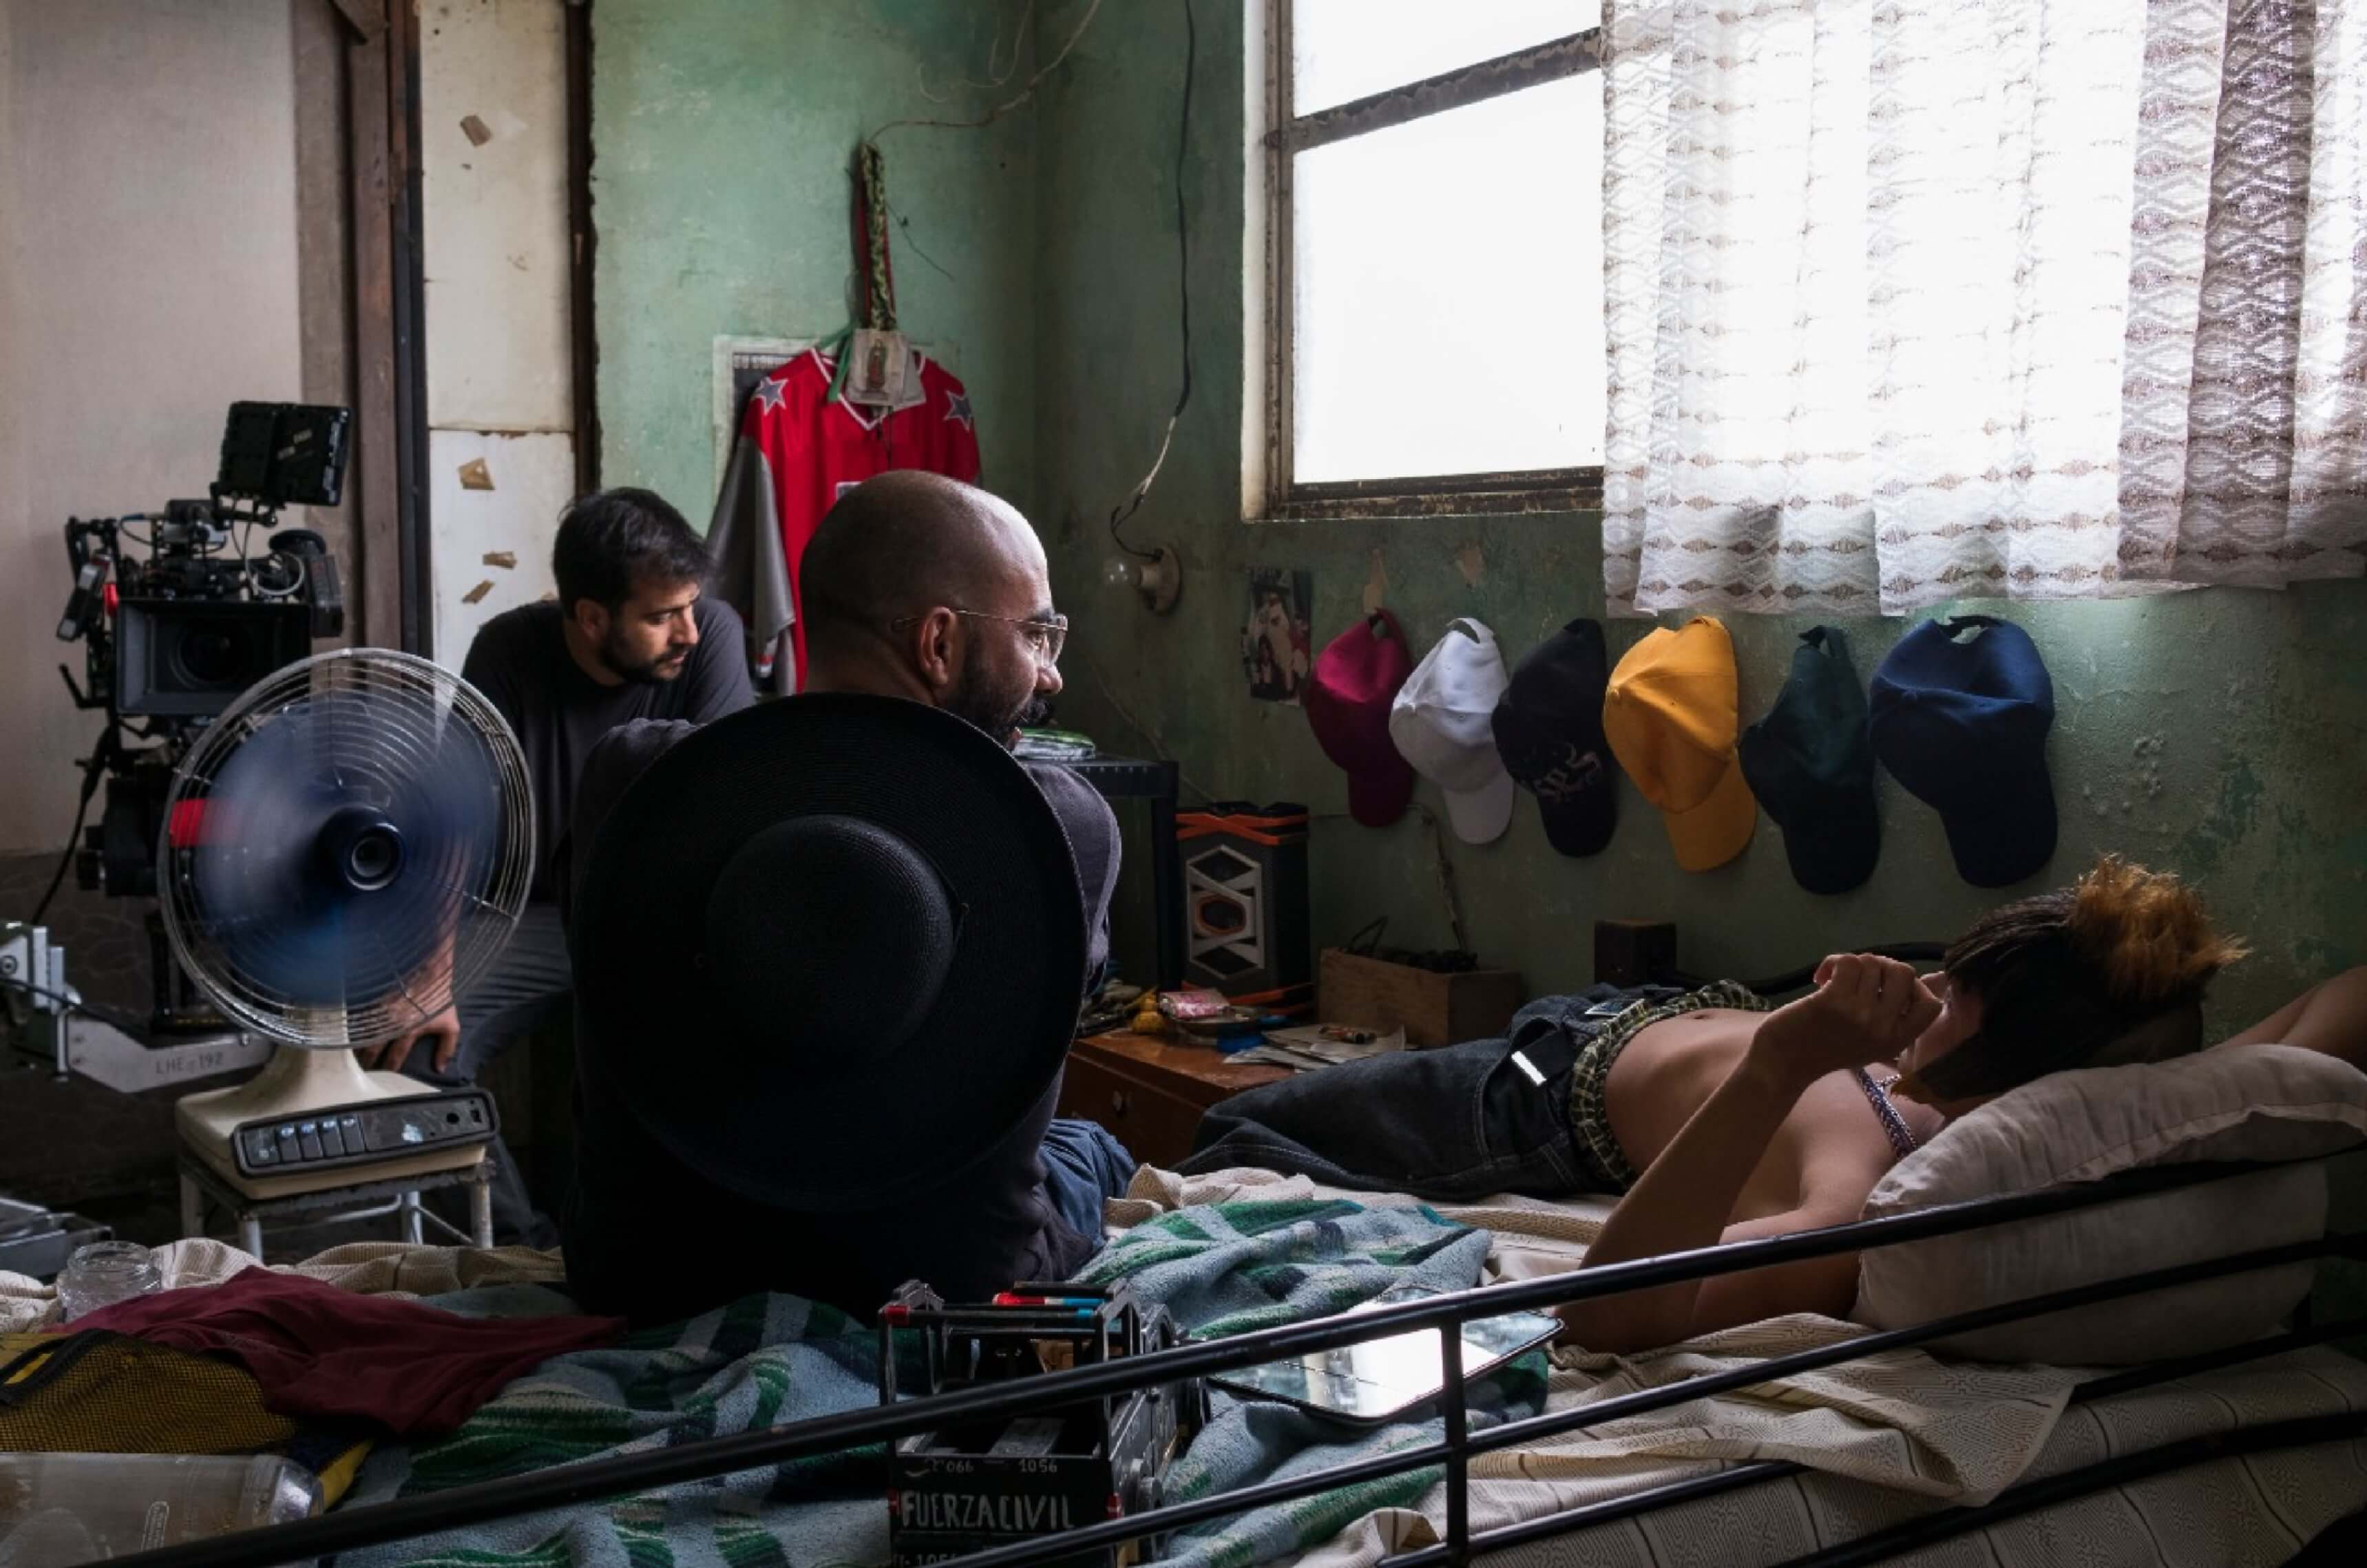 The cinematographer, director, and actor appear in a cramped room with peeling paint, crowded with the character Ulises's personal belongings.